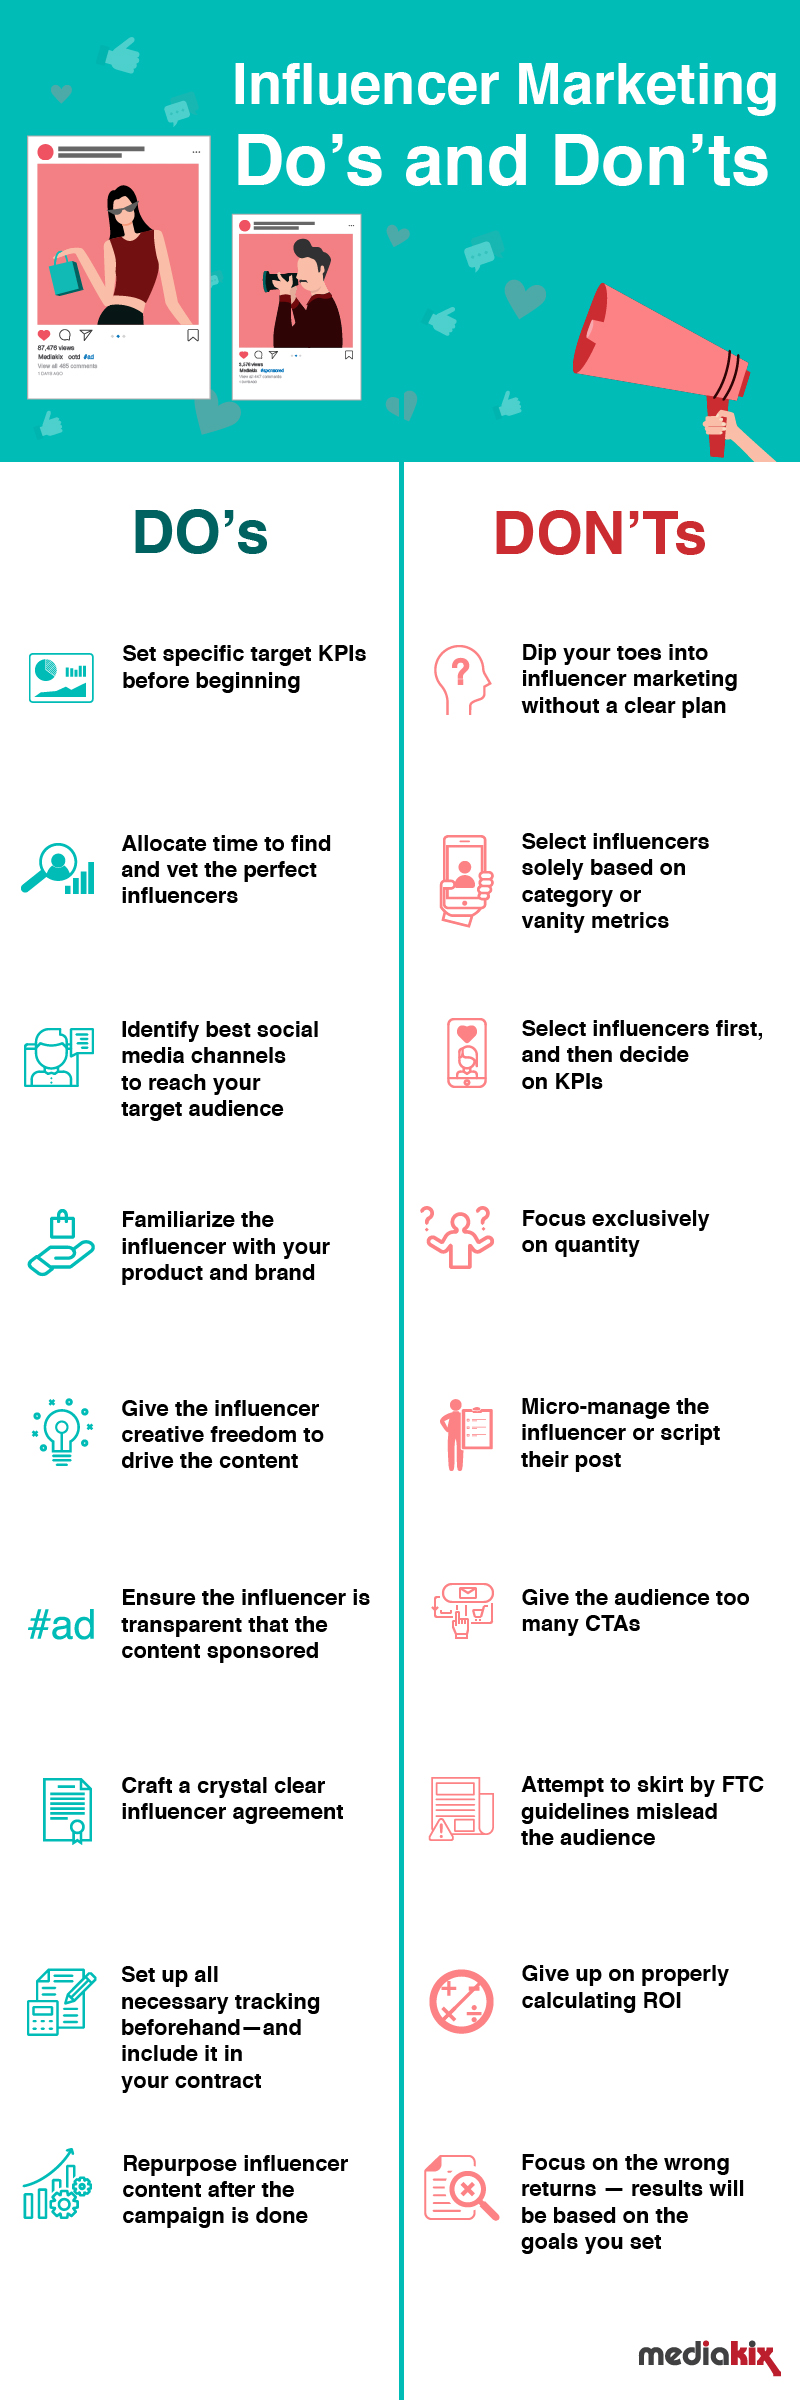 Infographic lists key influencer marketing success tips